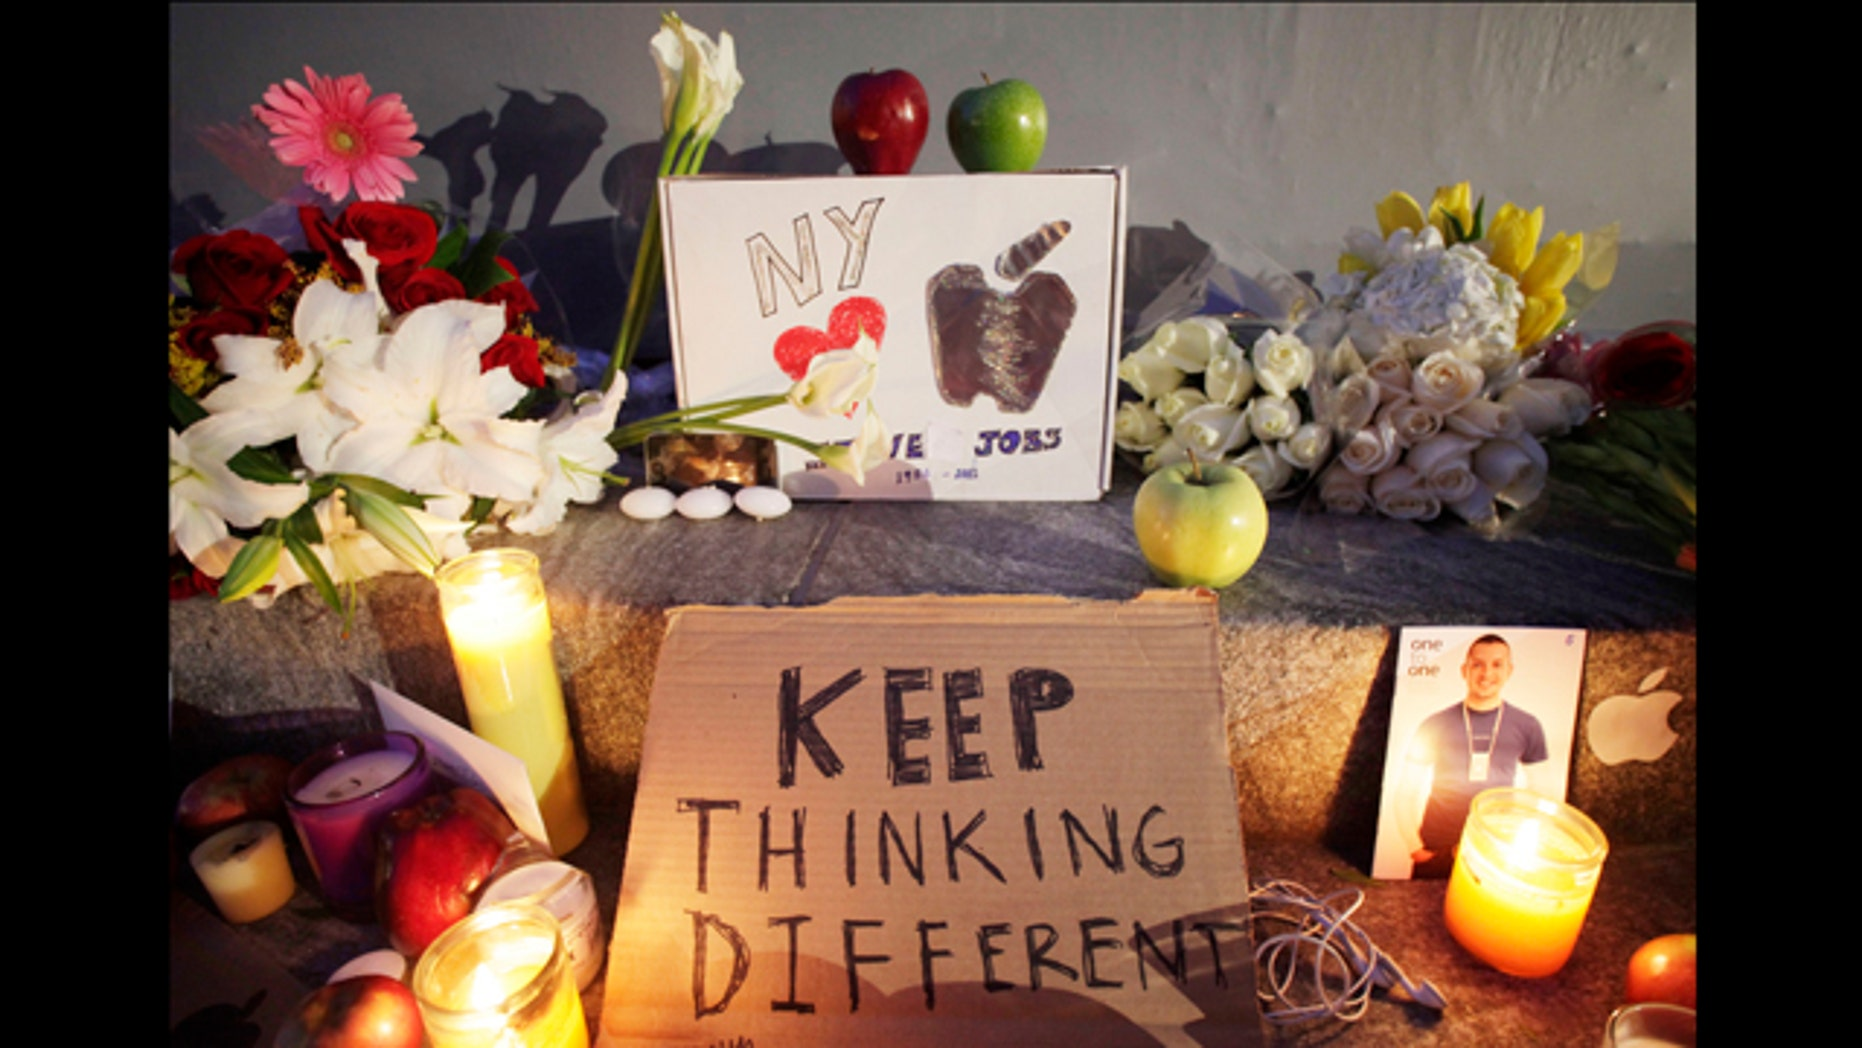 Candles illuminate a memorial to Apple co-founder Steve Jobs, Thursday, Oct. 6, 2011 in front of an Apple store in New York. Jobs died Wednesday at 56.